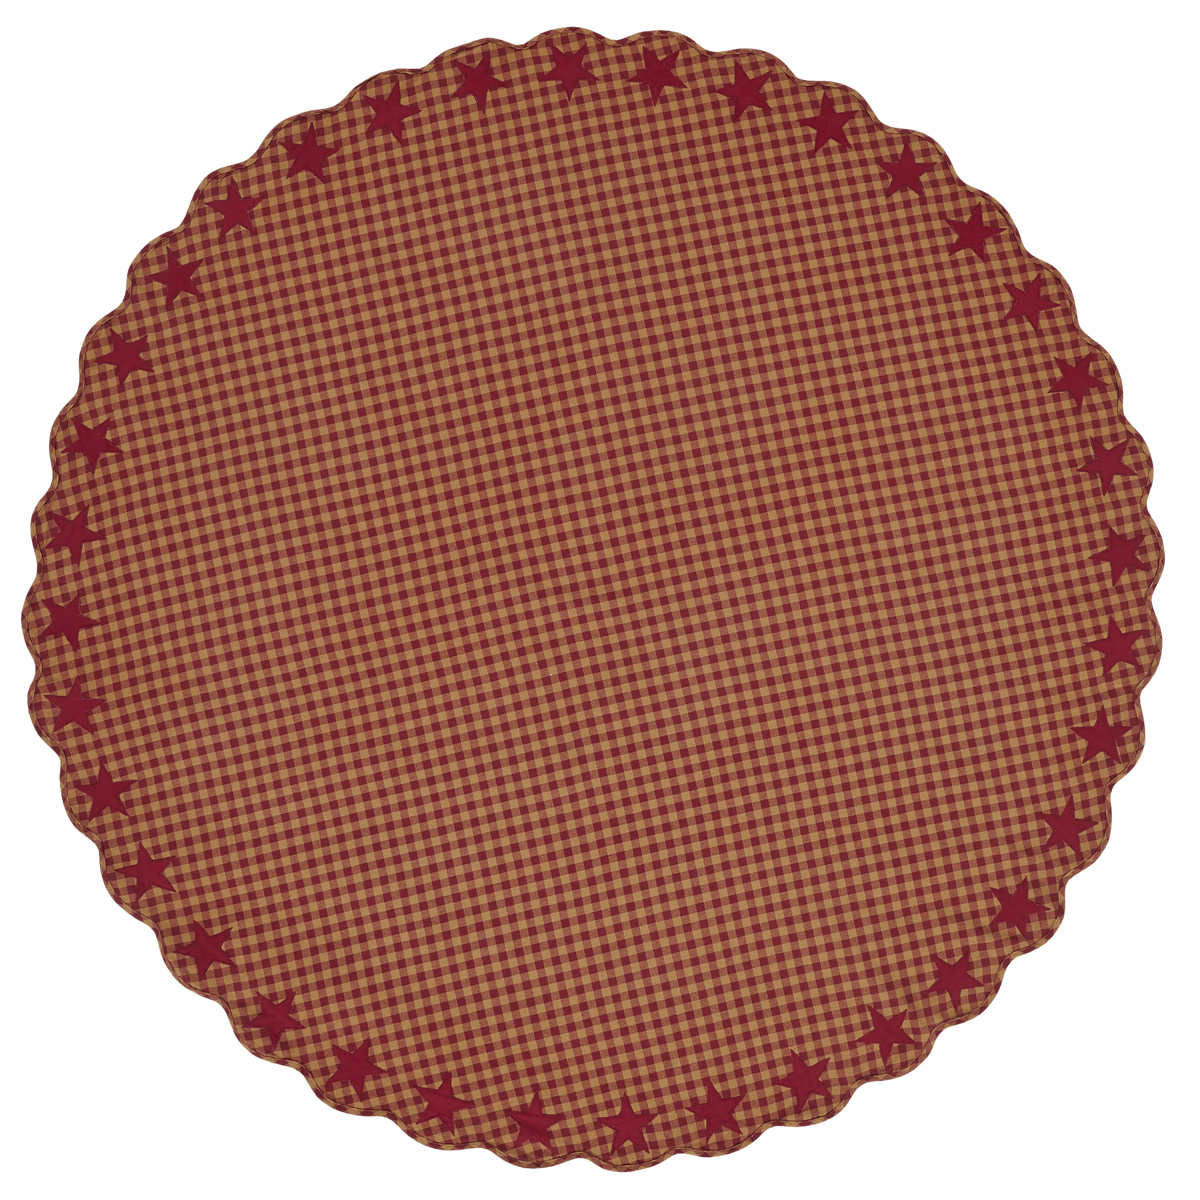 "BURGUNDY Star Scalloped Table Cloth - 70"" Round - Burgundy/Dark Tan - VHC Brands"